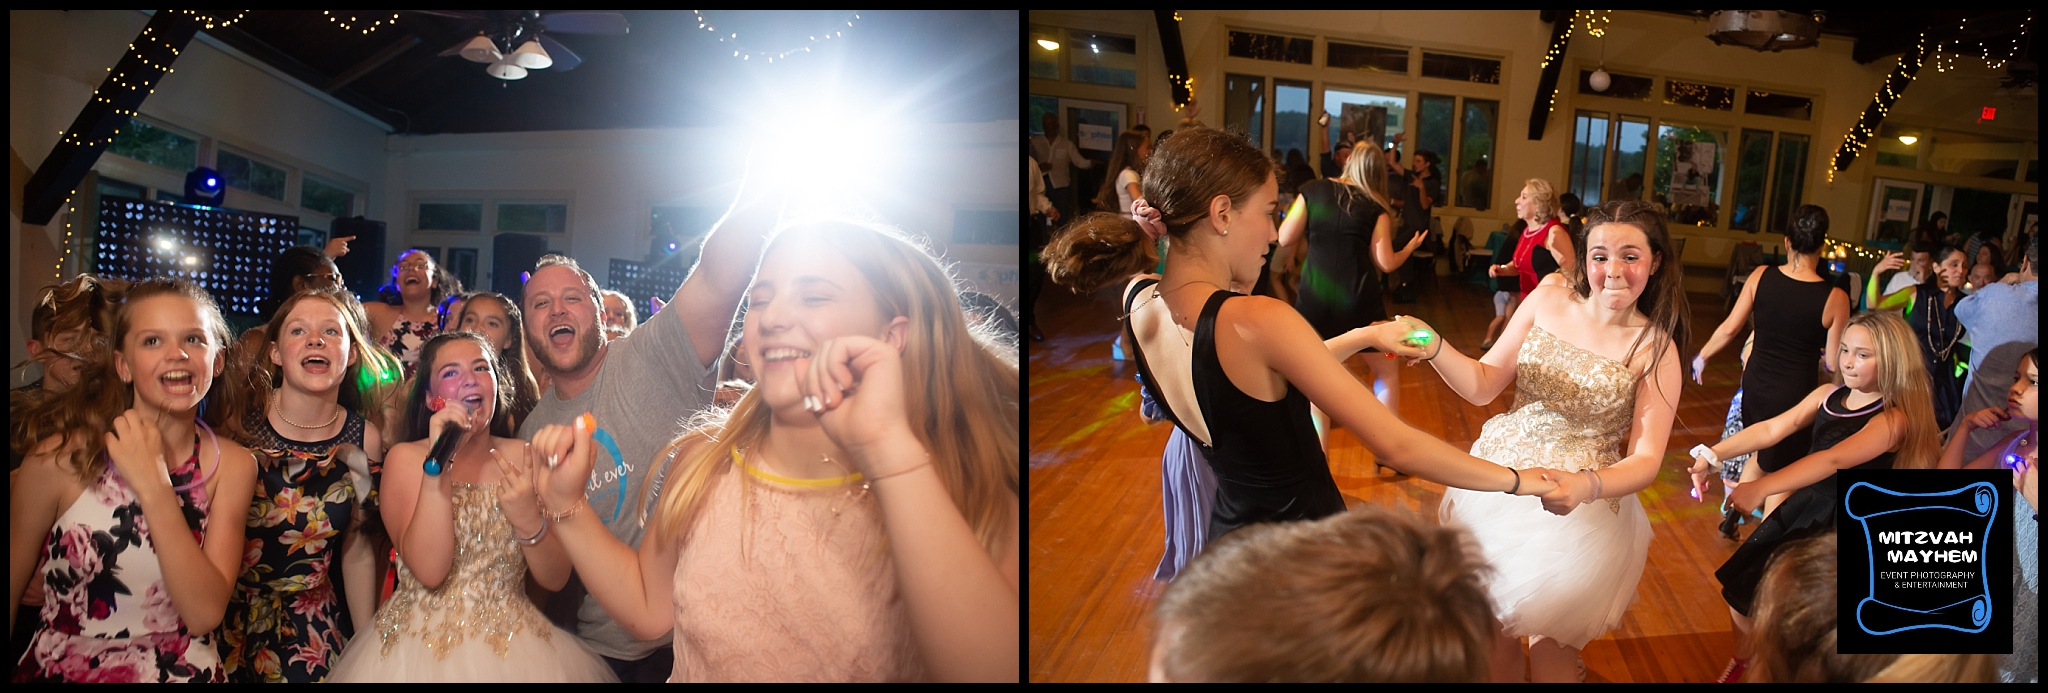 NJ-bat-mitzvah-mayhem-photography (11).jpg